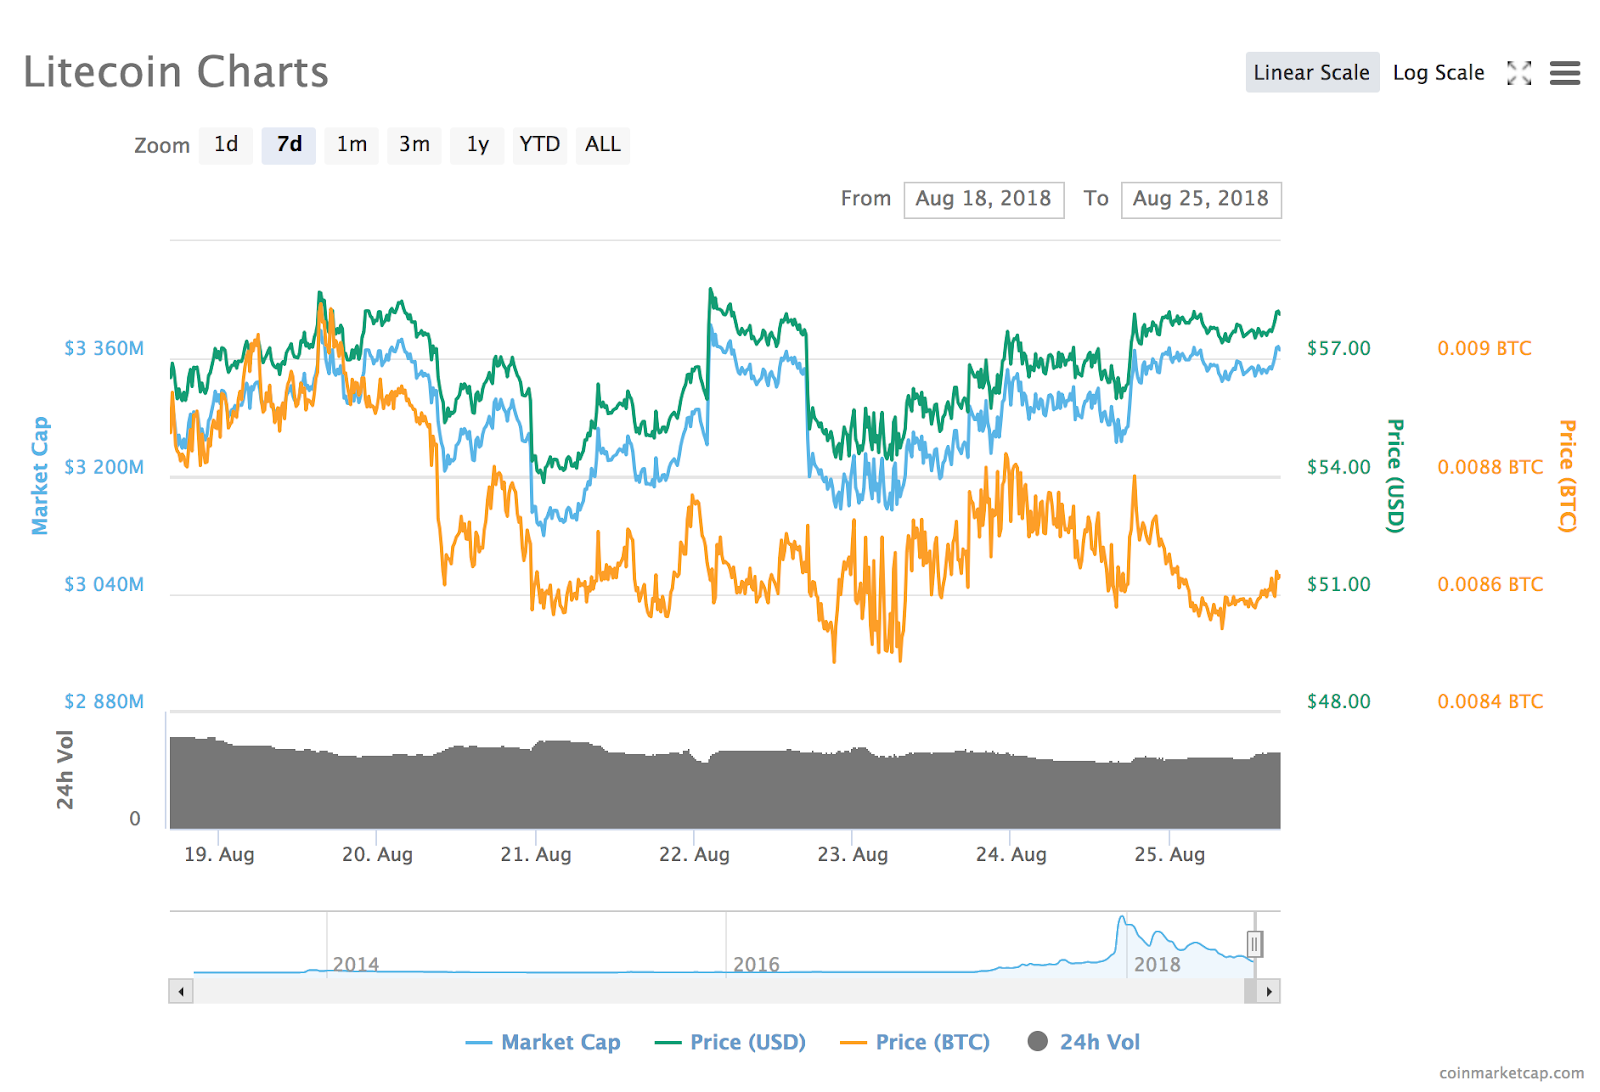 Litecoin's 7-day price chart